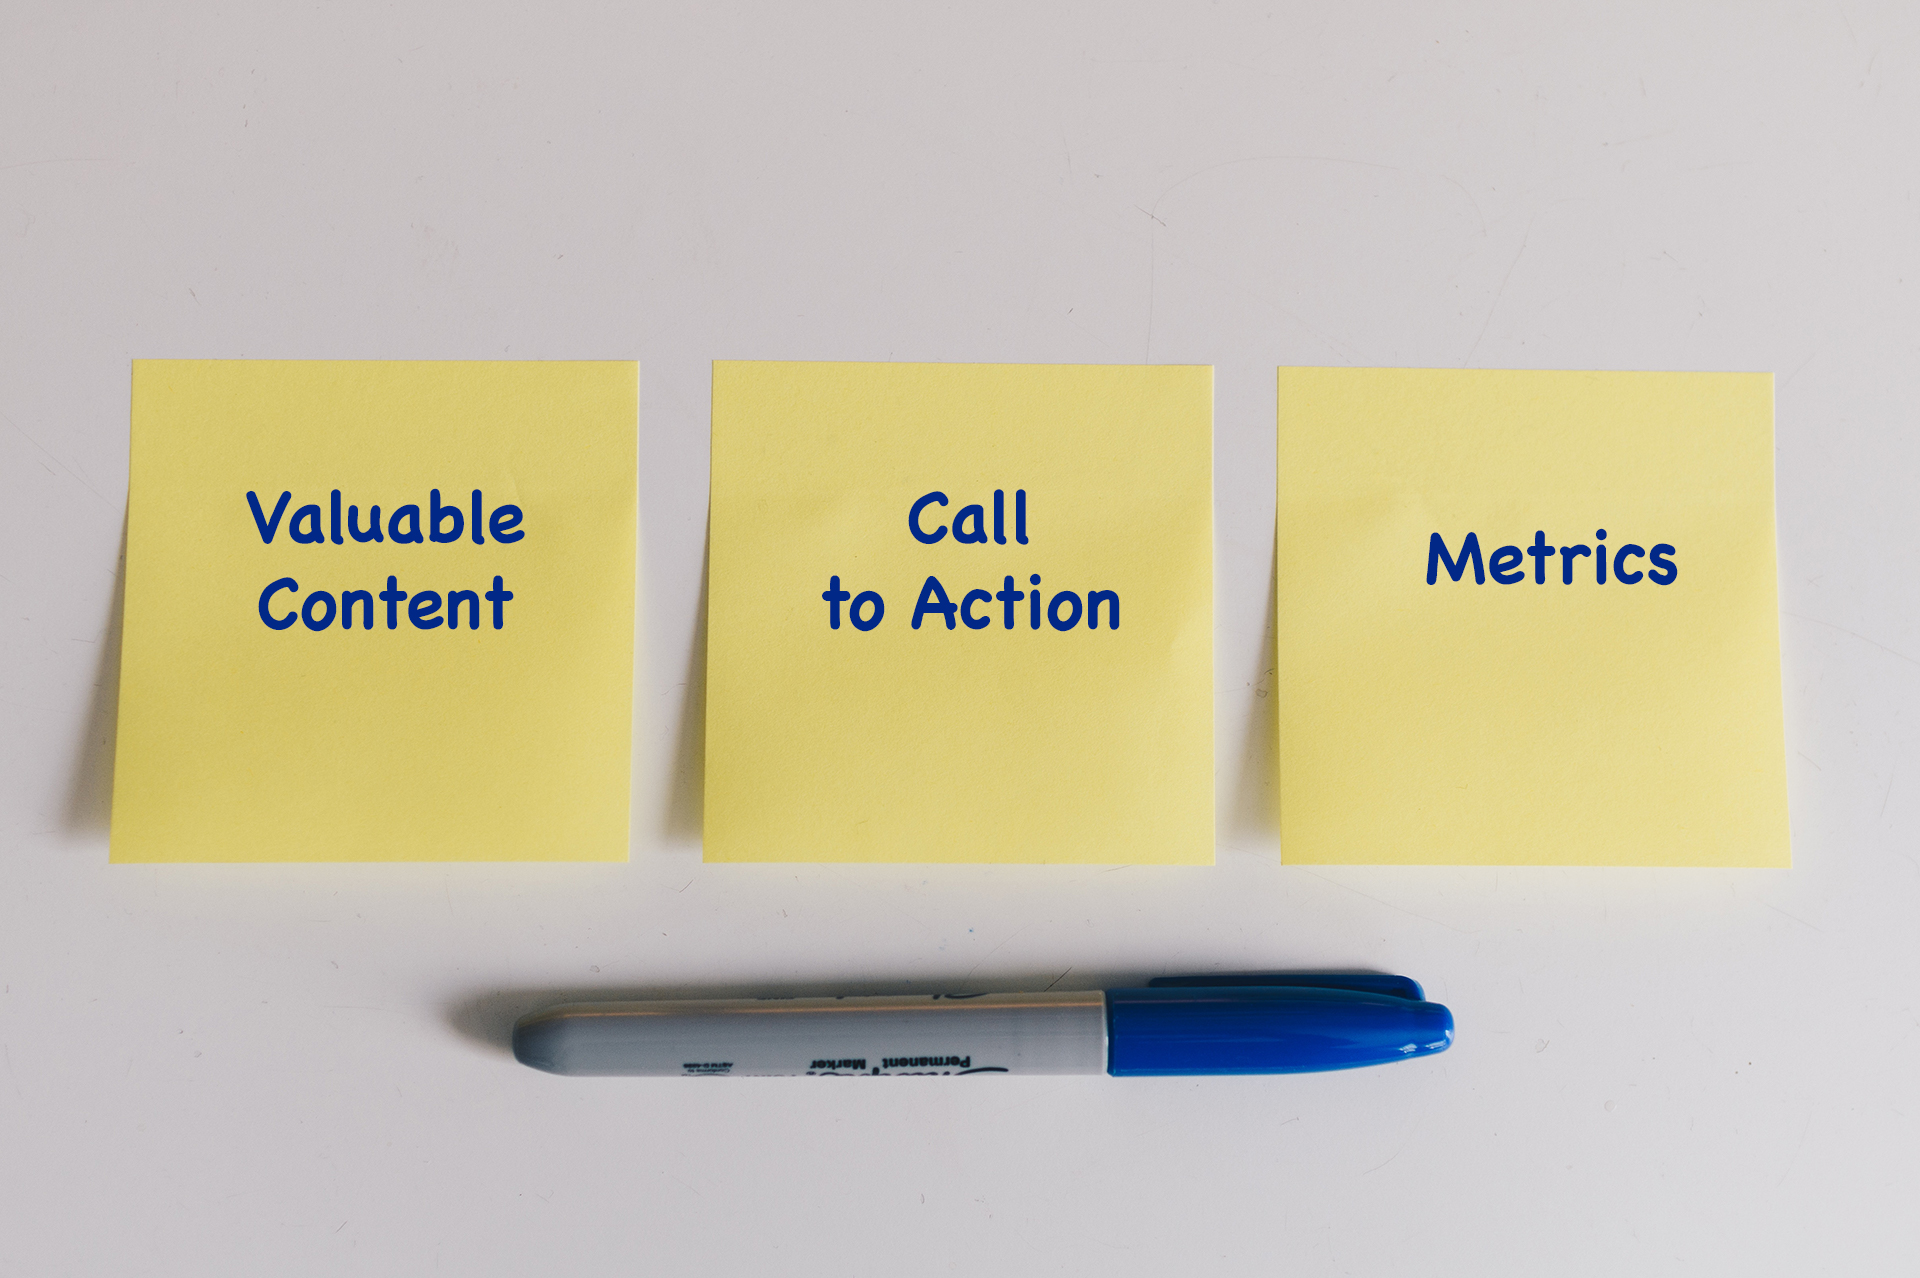 Valuable Content + Call to Action + Metrics